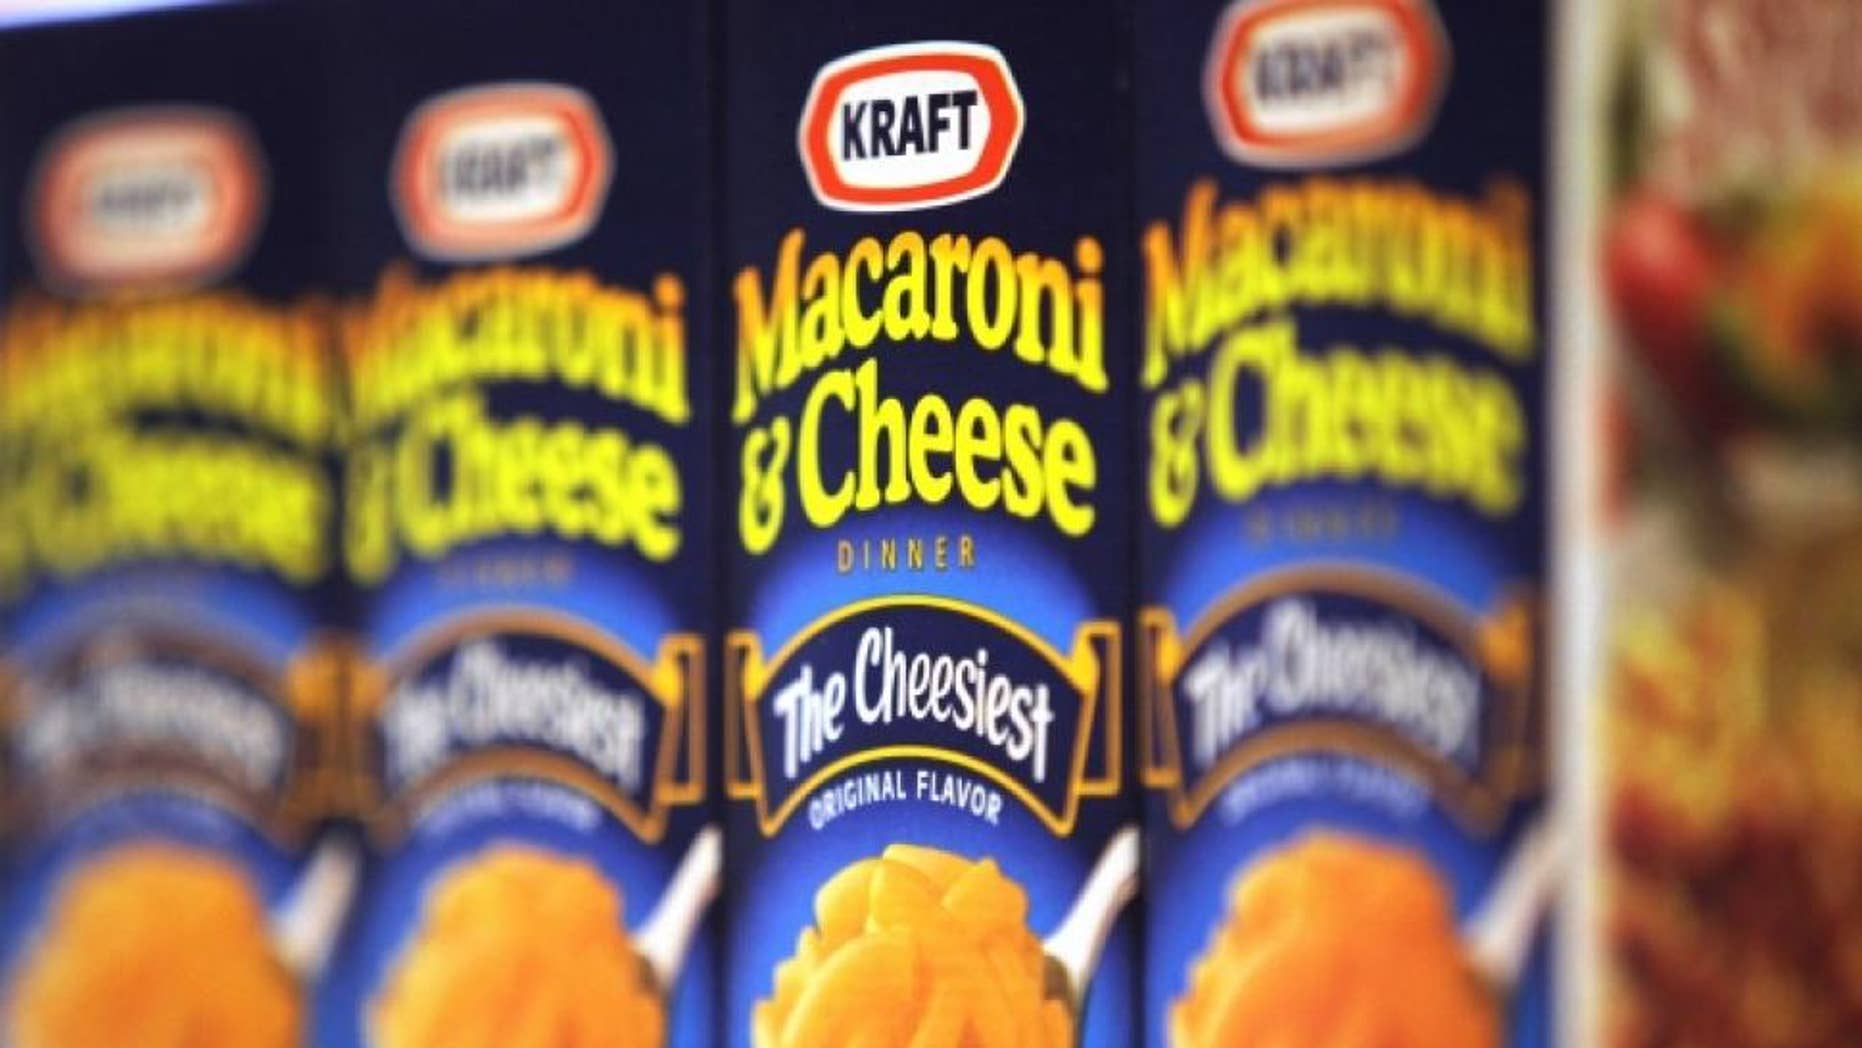 Kraft will no longer use artificial dyes and preservatives in their Macaroni & Cheese starting next year.